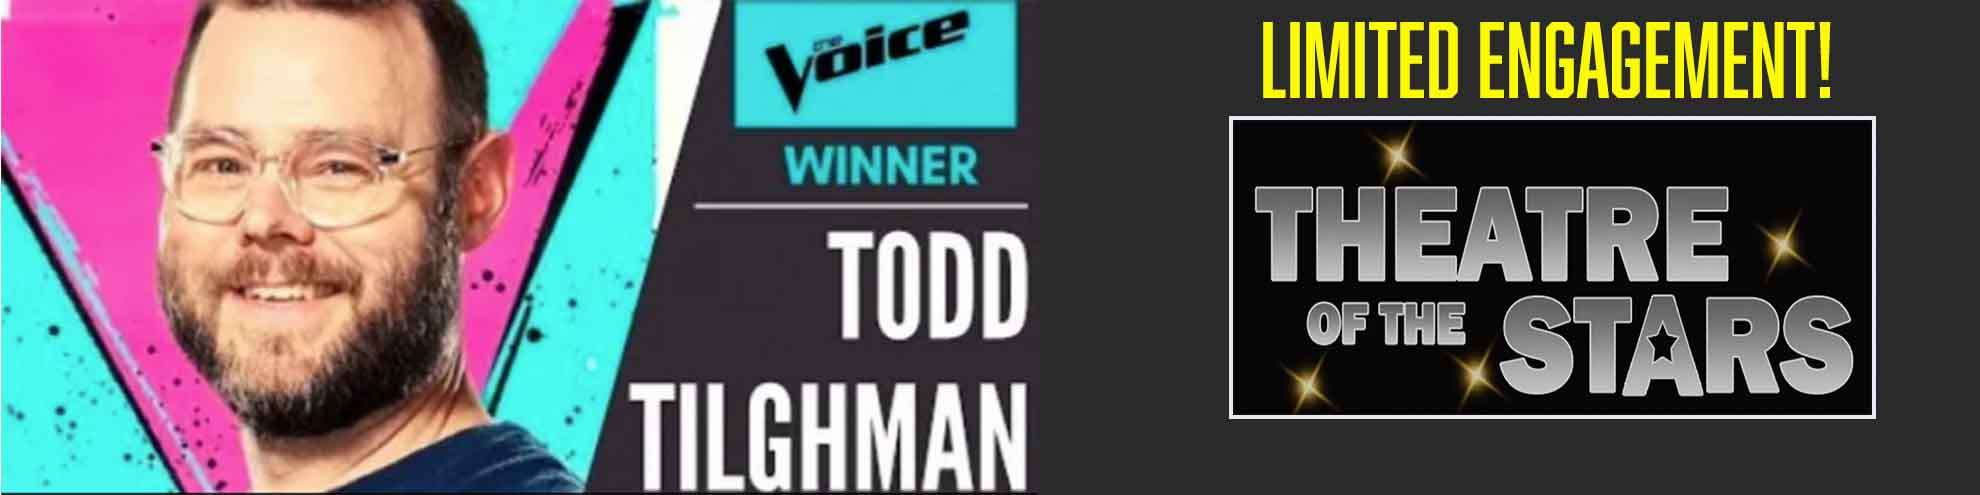 Todd Tilghman Live In Concert Discount Tickets